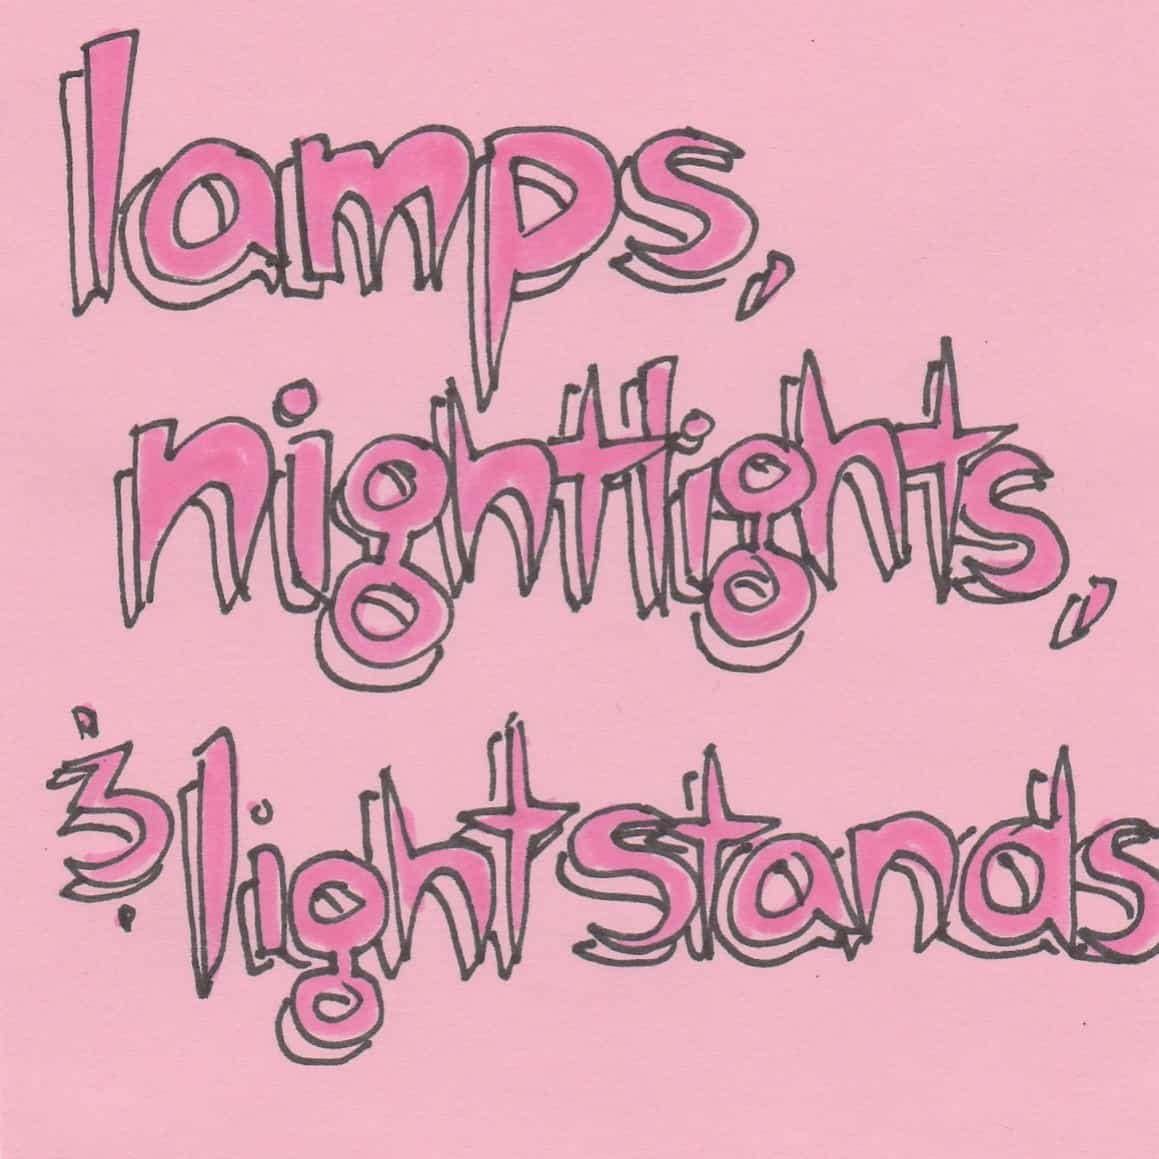 Lamps, Nightlights, and Light Stands